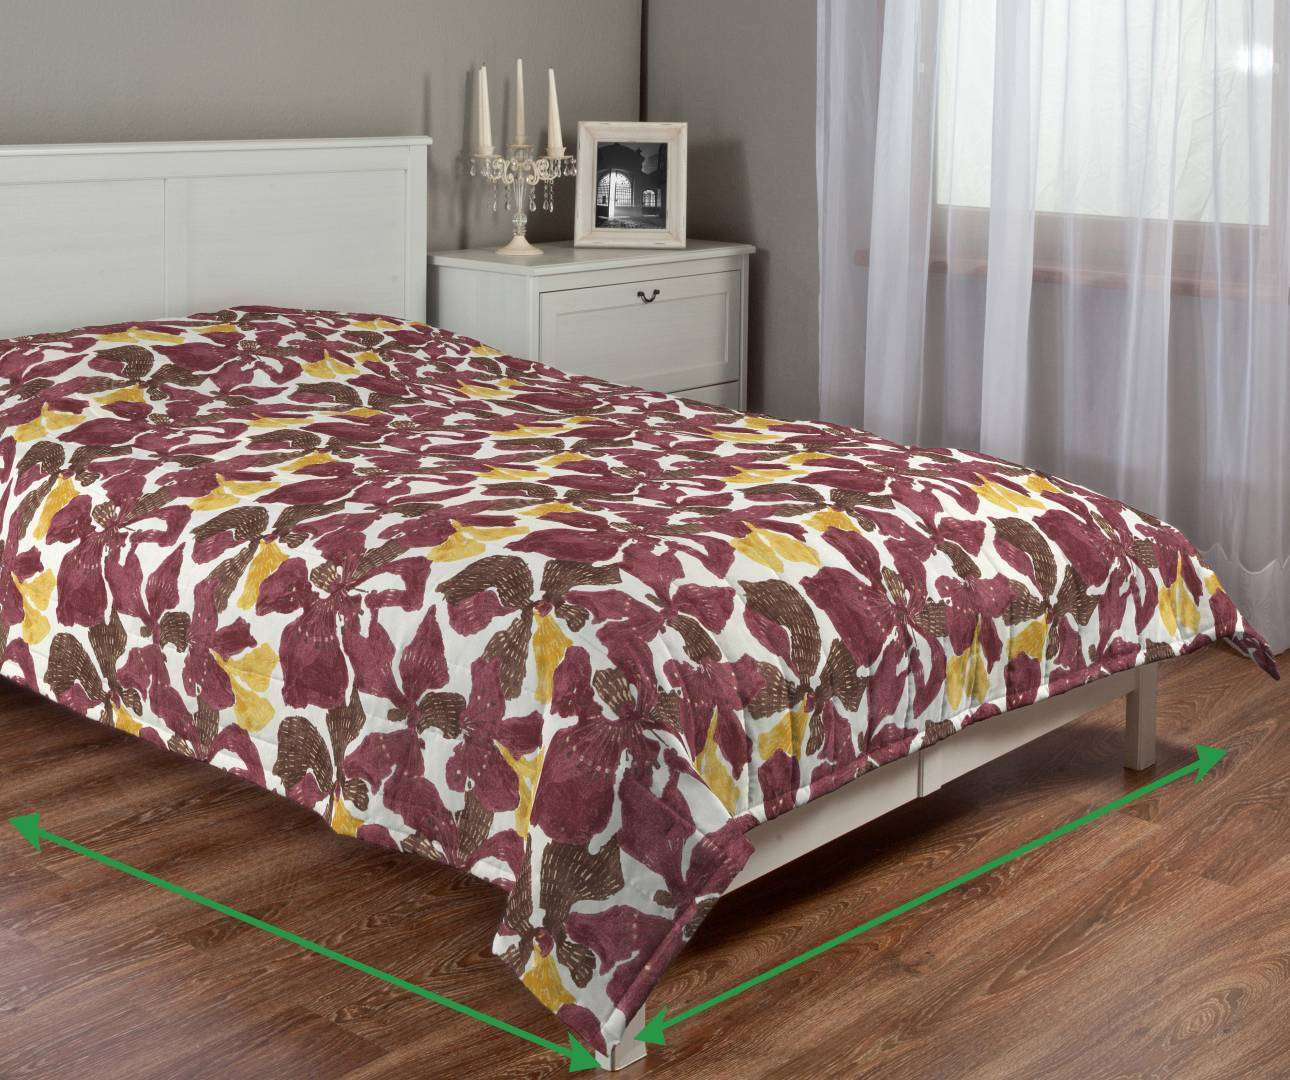 Quilted throw (vertical quilt pattern) in collection SALE, fabric: 141-09